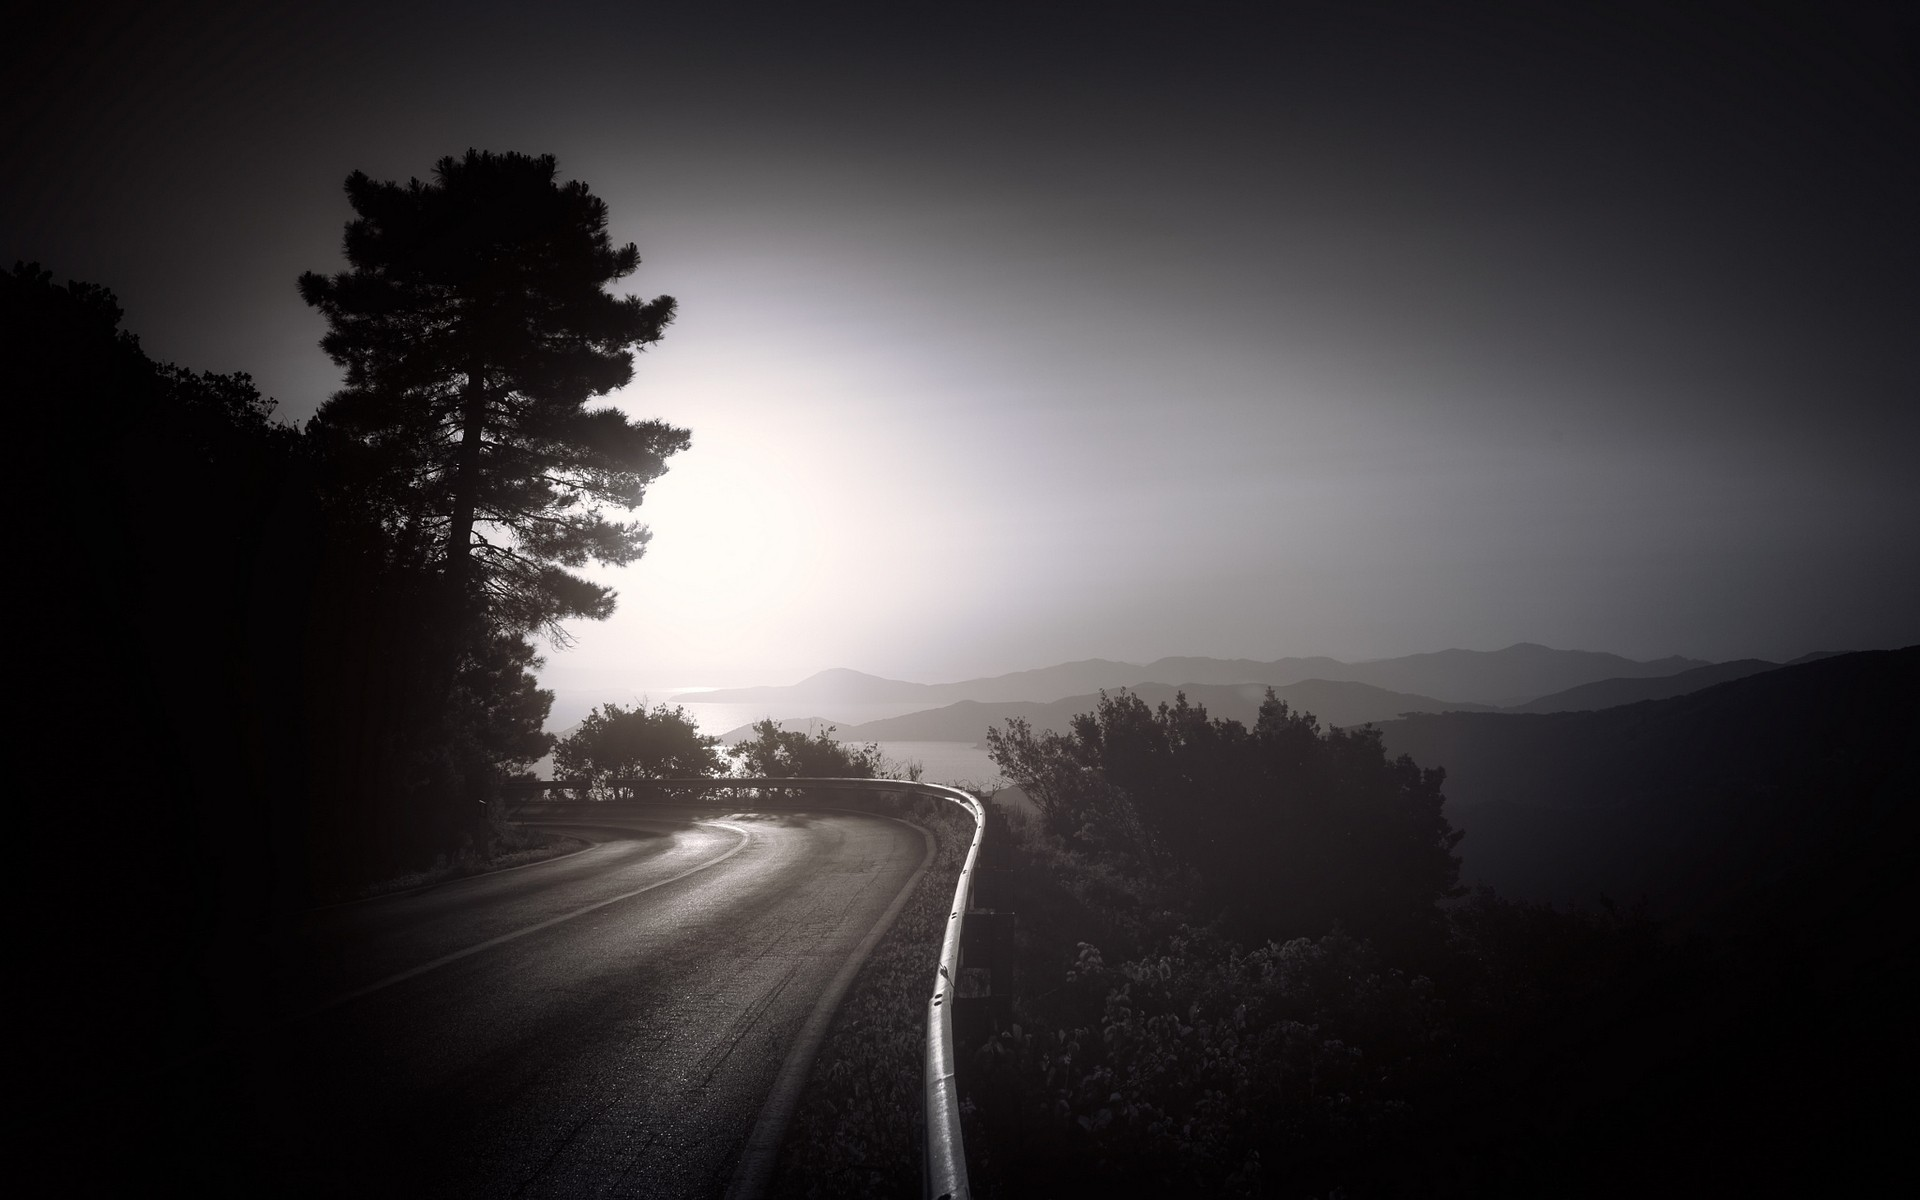 Dark Road HD Nature 4k Wallpapers Images Backgrounds Photos And